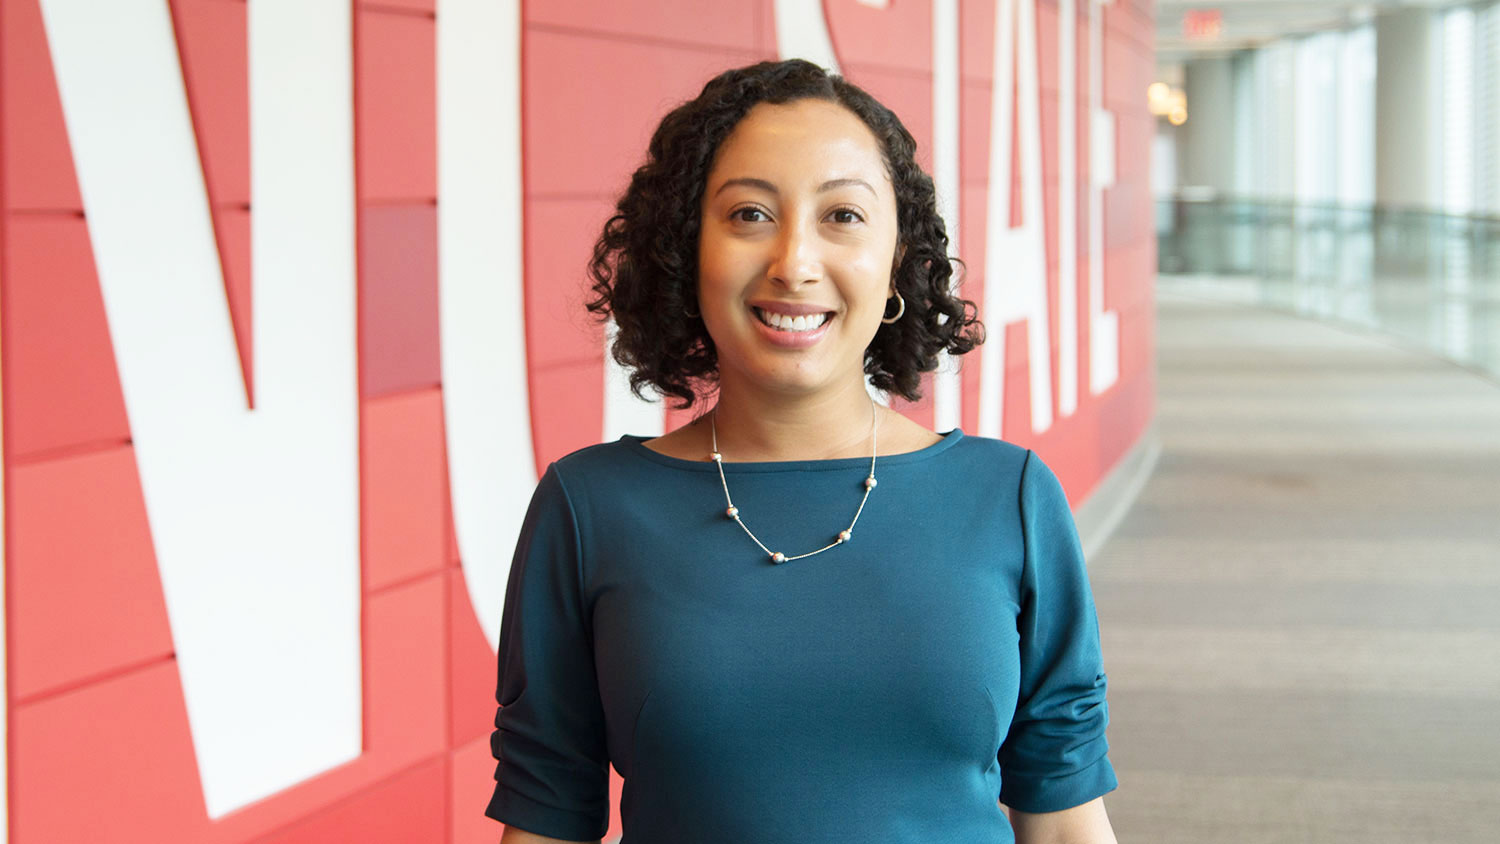 Sachelle Ford, assistant director of the African American Cultural Center at NCState